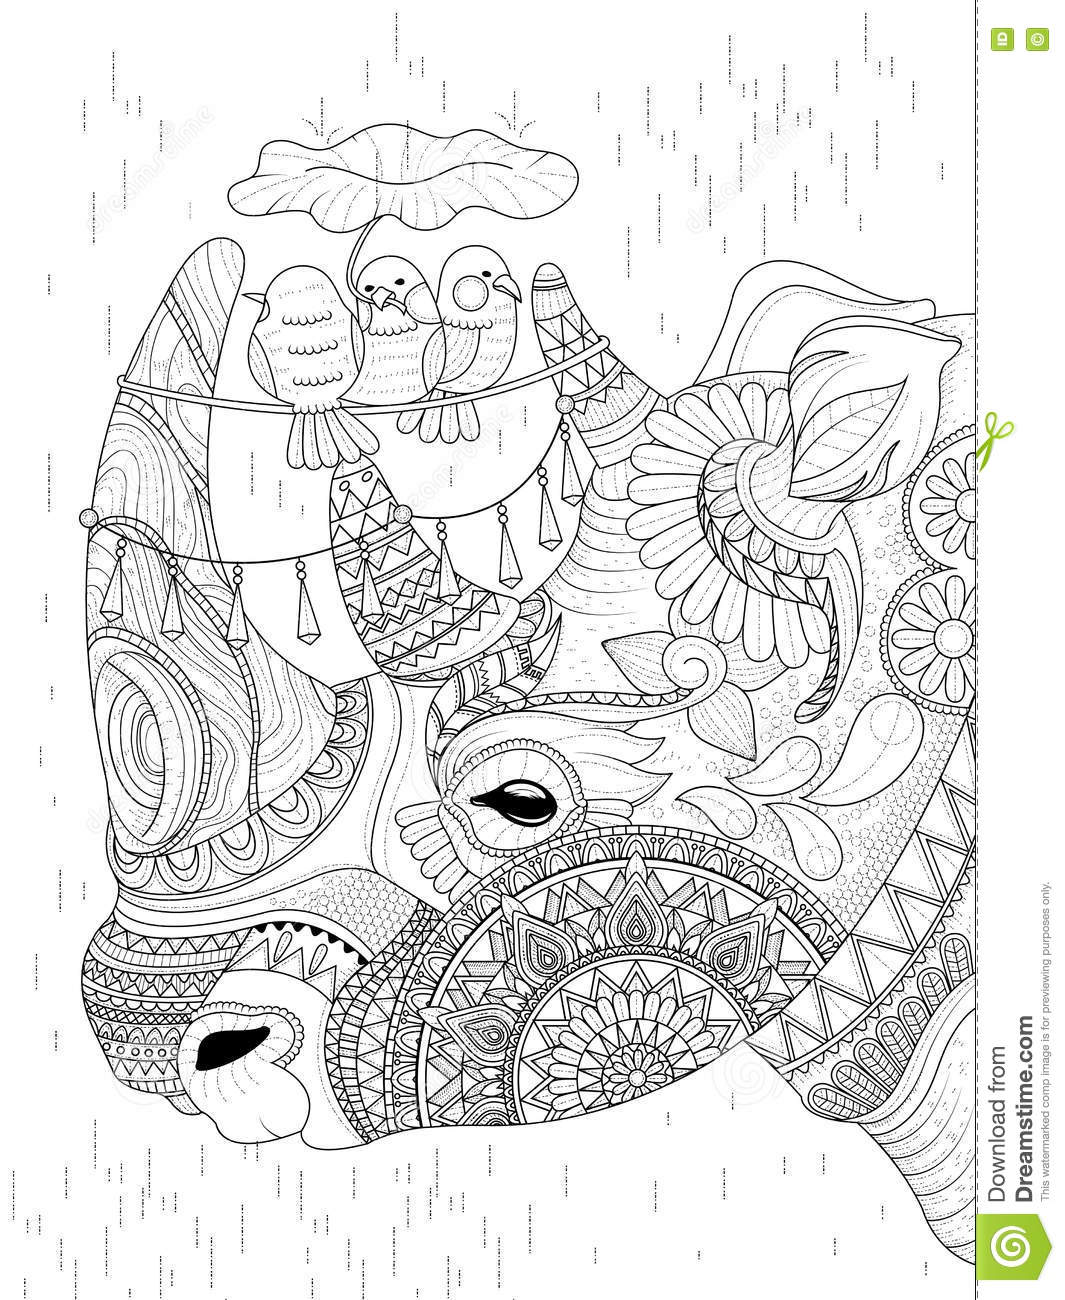 Rhino adult coloring page stock vector. Illustration of cover - 71291554